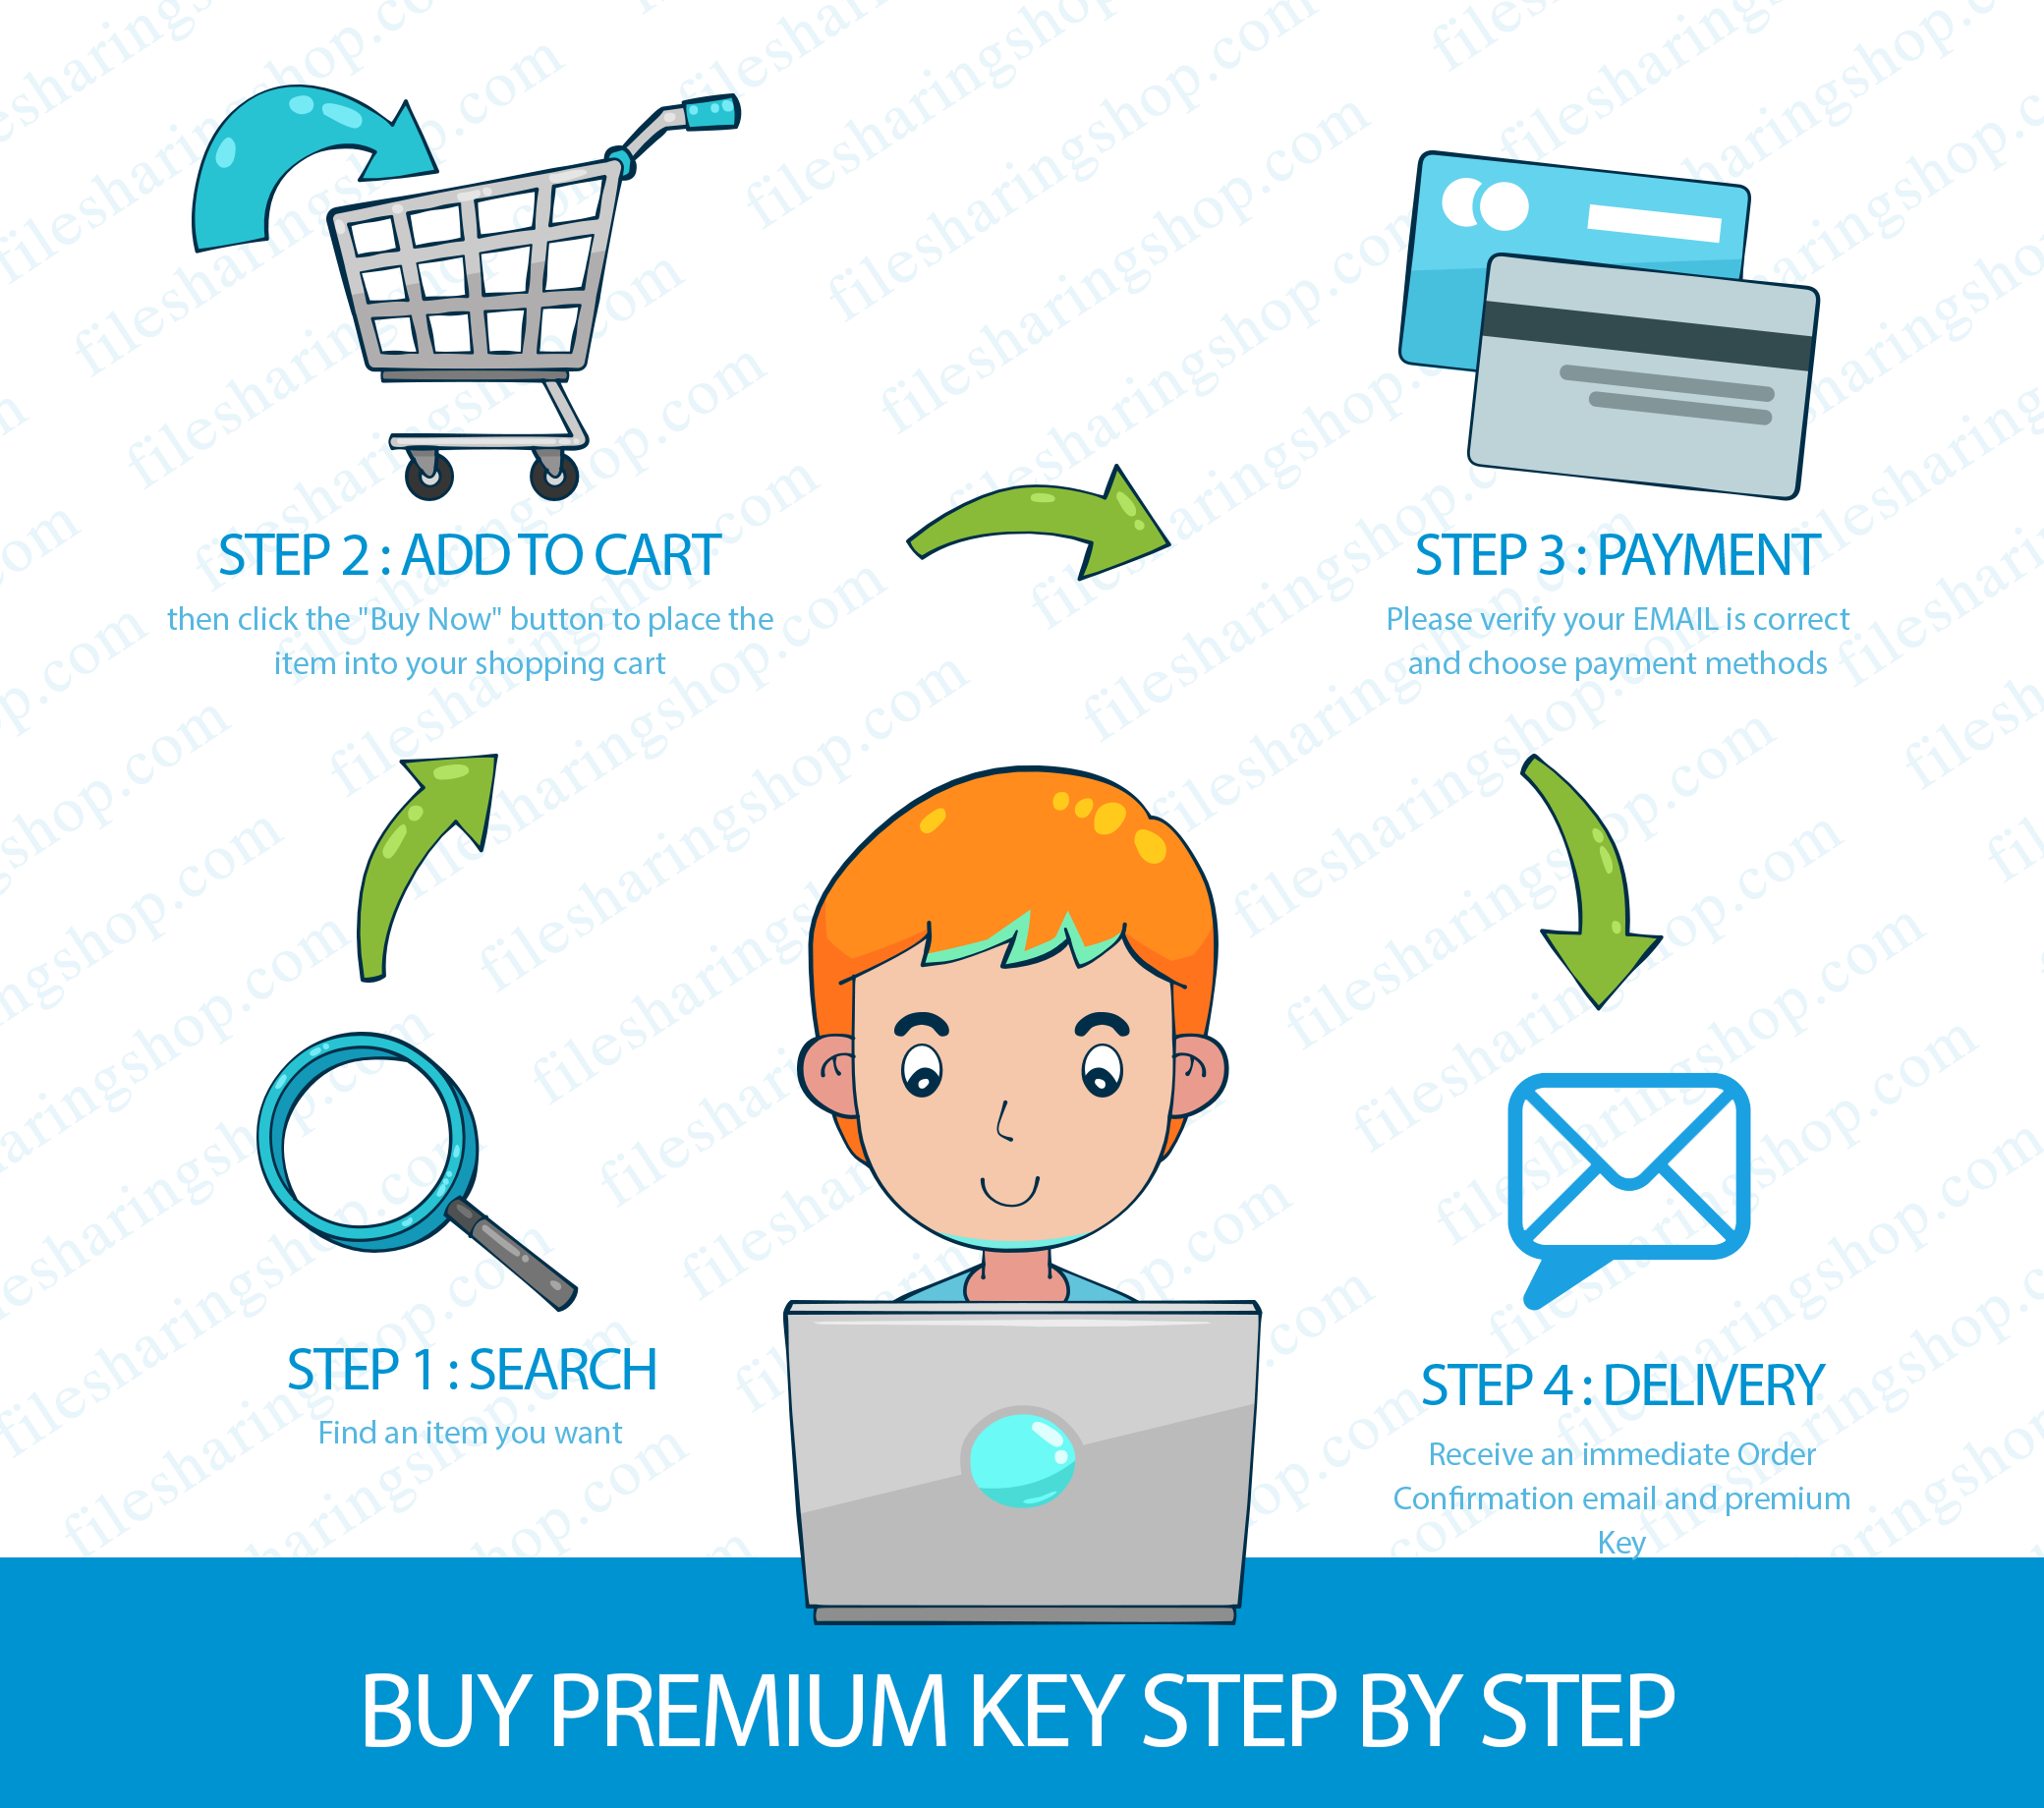 HOW TO BUY REAL-DEBRID PREMIUM